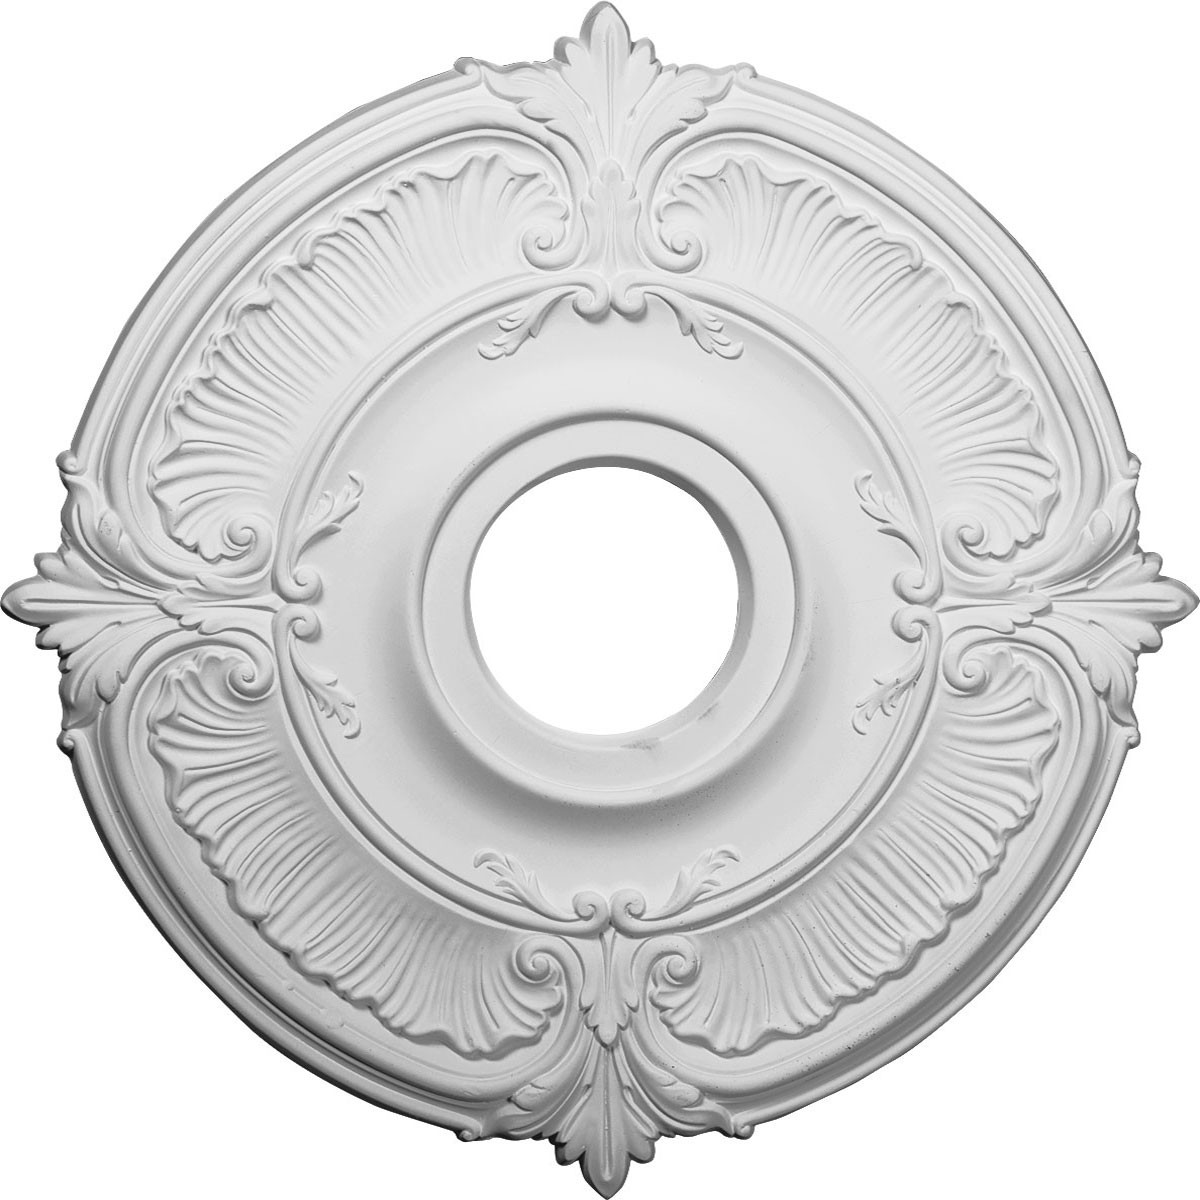 """EM-CM18AT - 18""""OD x 4""""ID x 5/8""""P Attica Ceiling Medallion (Fits Canopies up to 5"""")"""